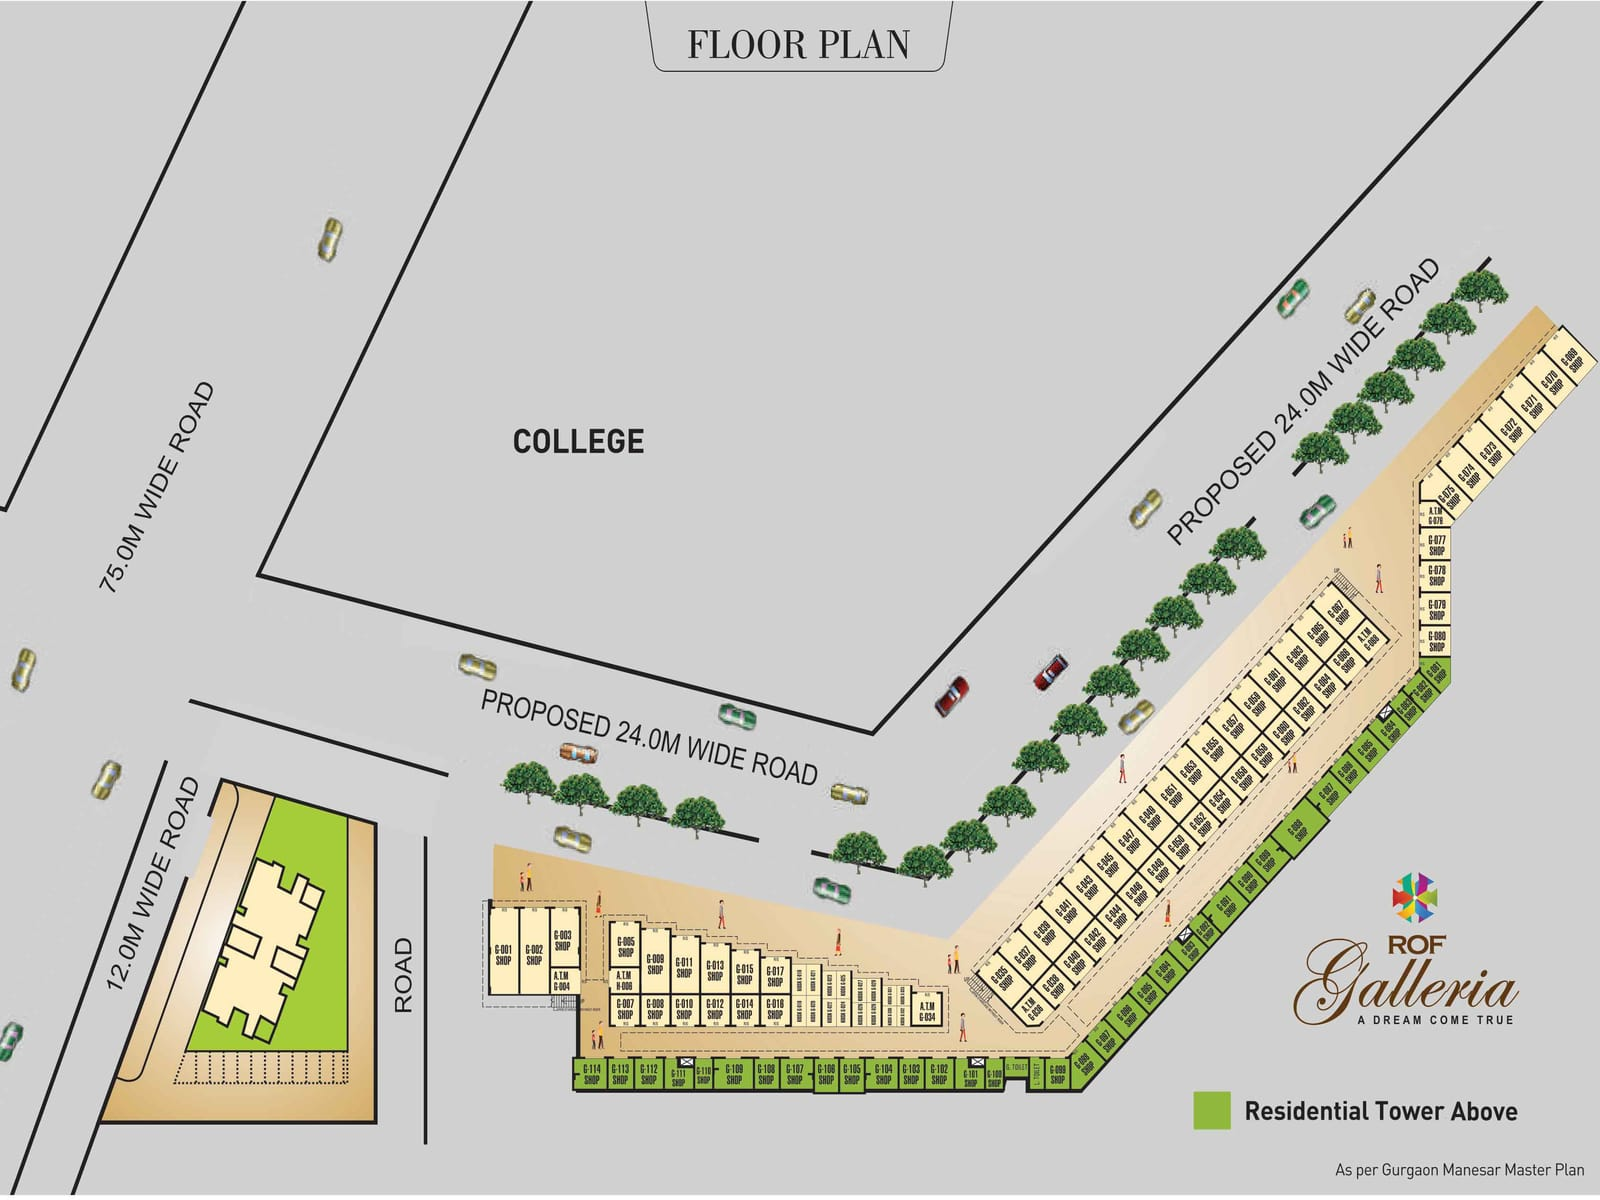 ROF GALLERIA SECTOR 102 FLOOR PLAN